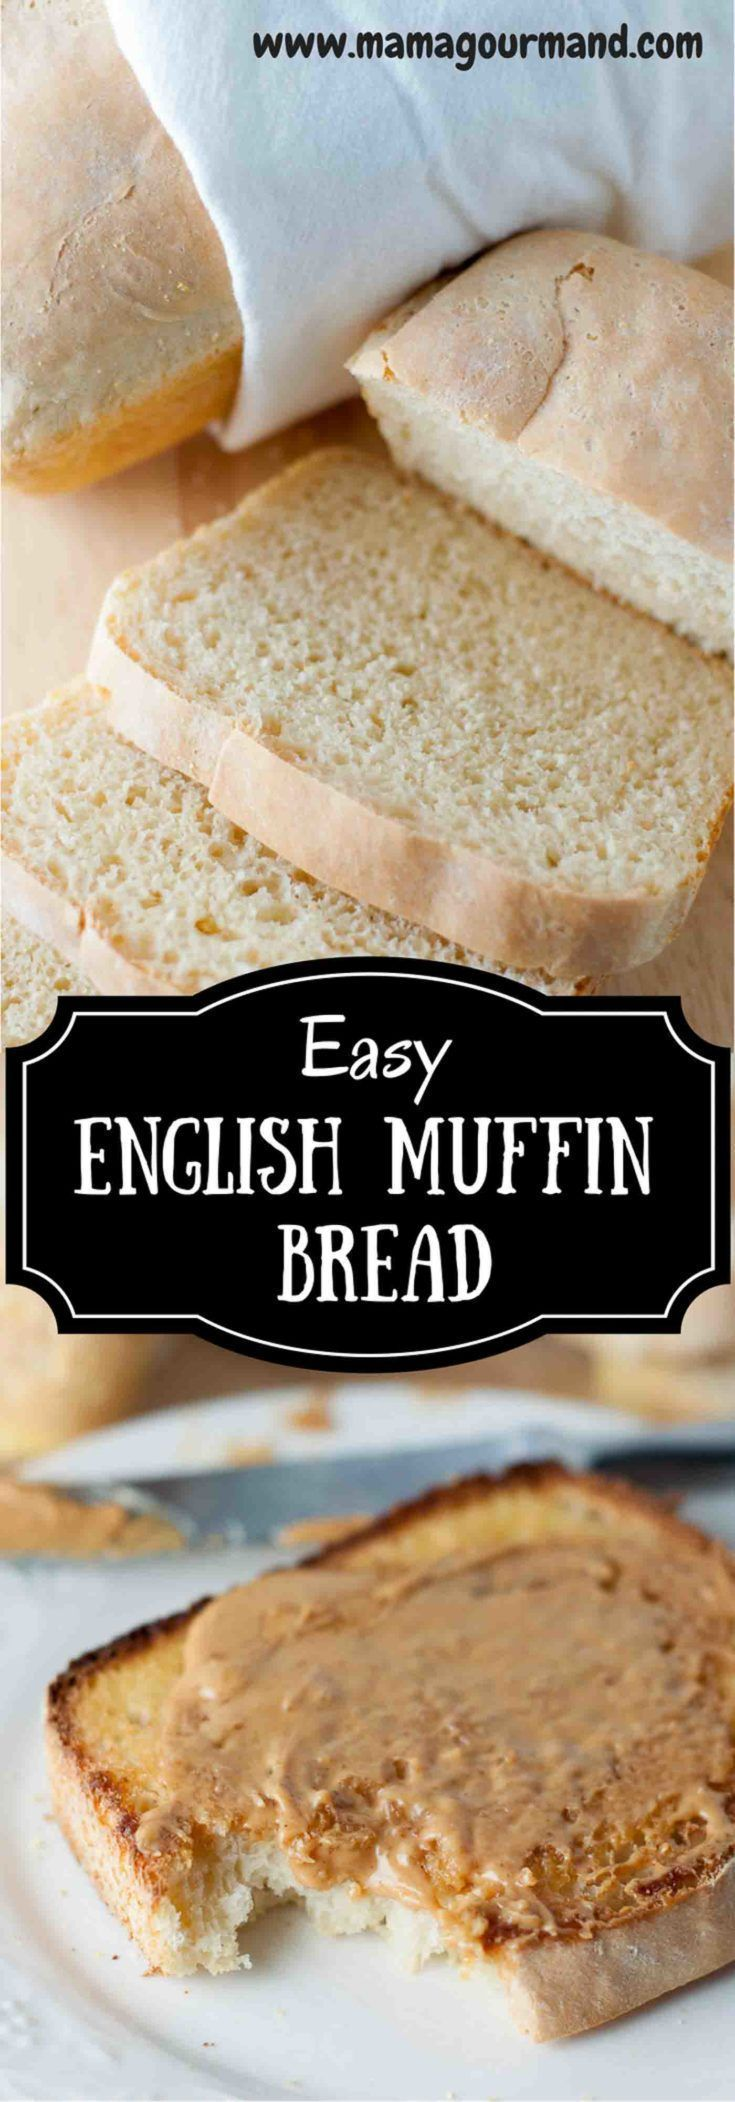 1000+ ideas about English Muffin Bread on Pinterest ...